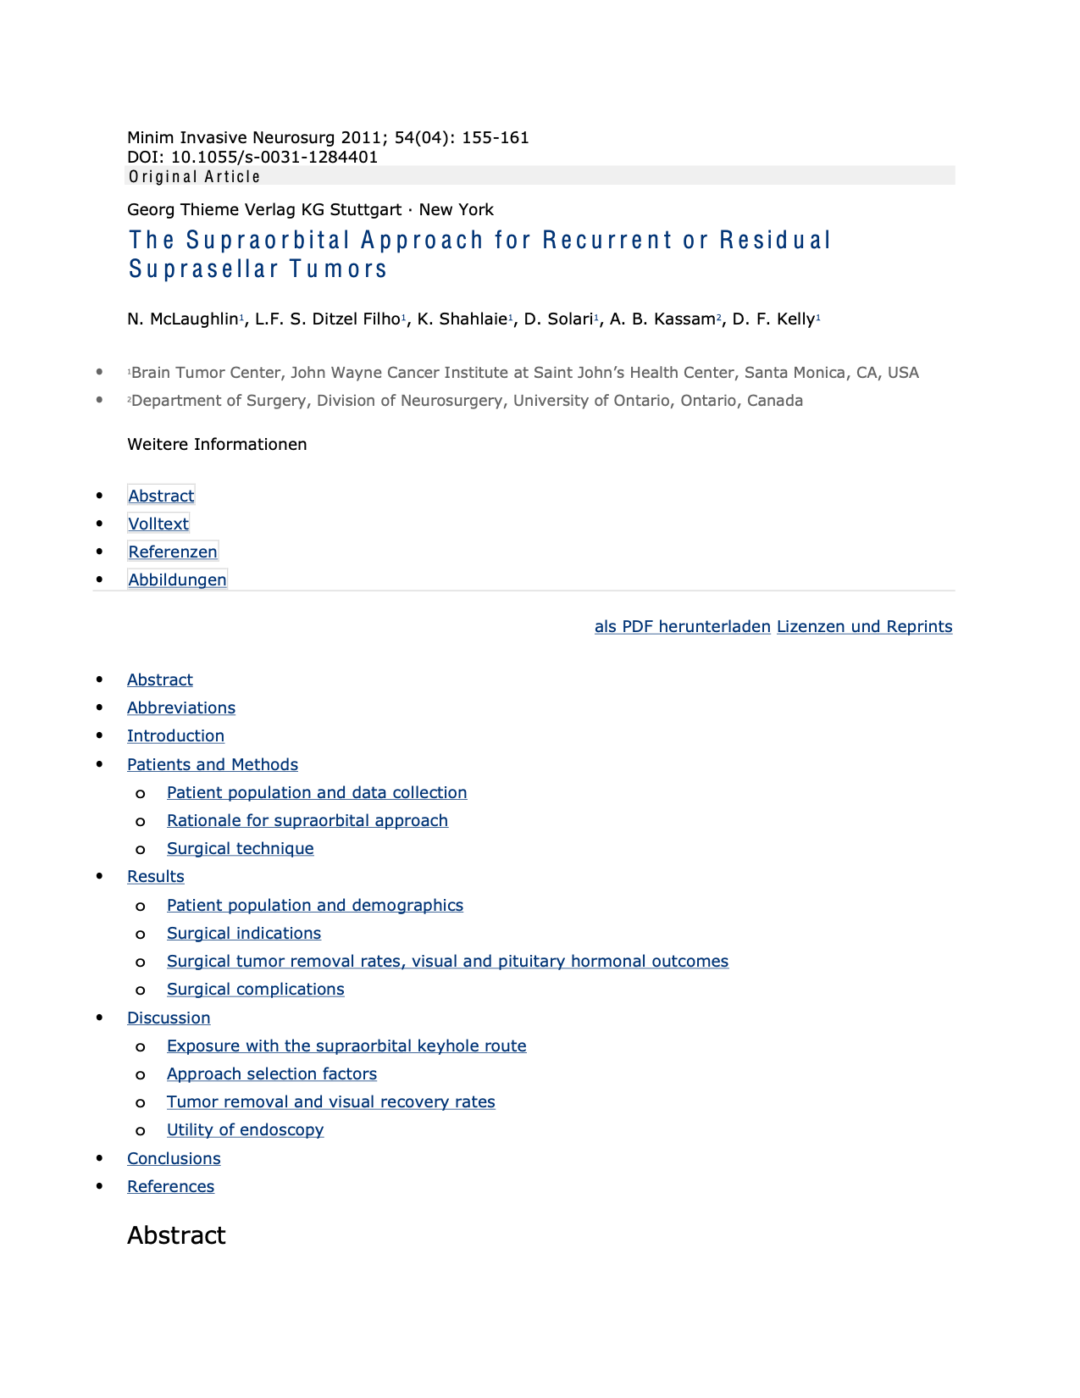 The Supraorbital Approach for Recurrent or Residual Suprasellar Tumors